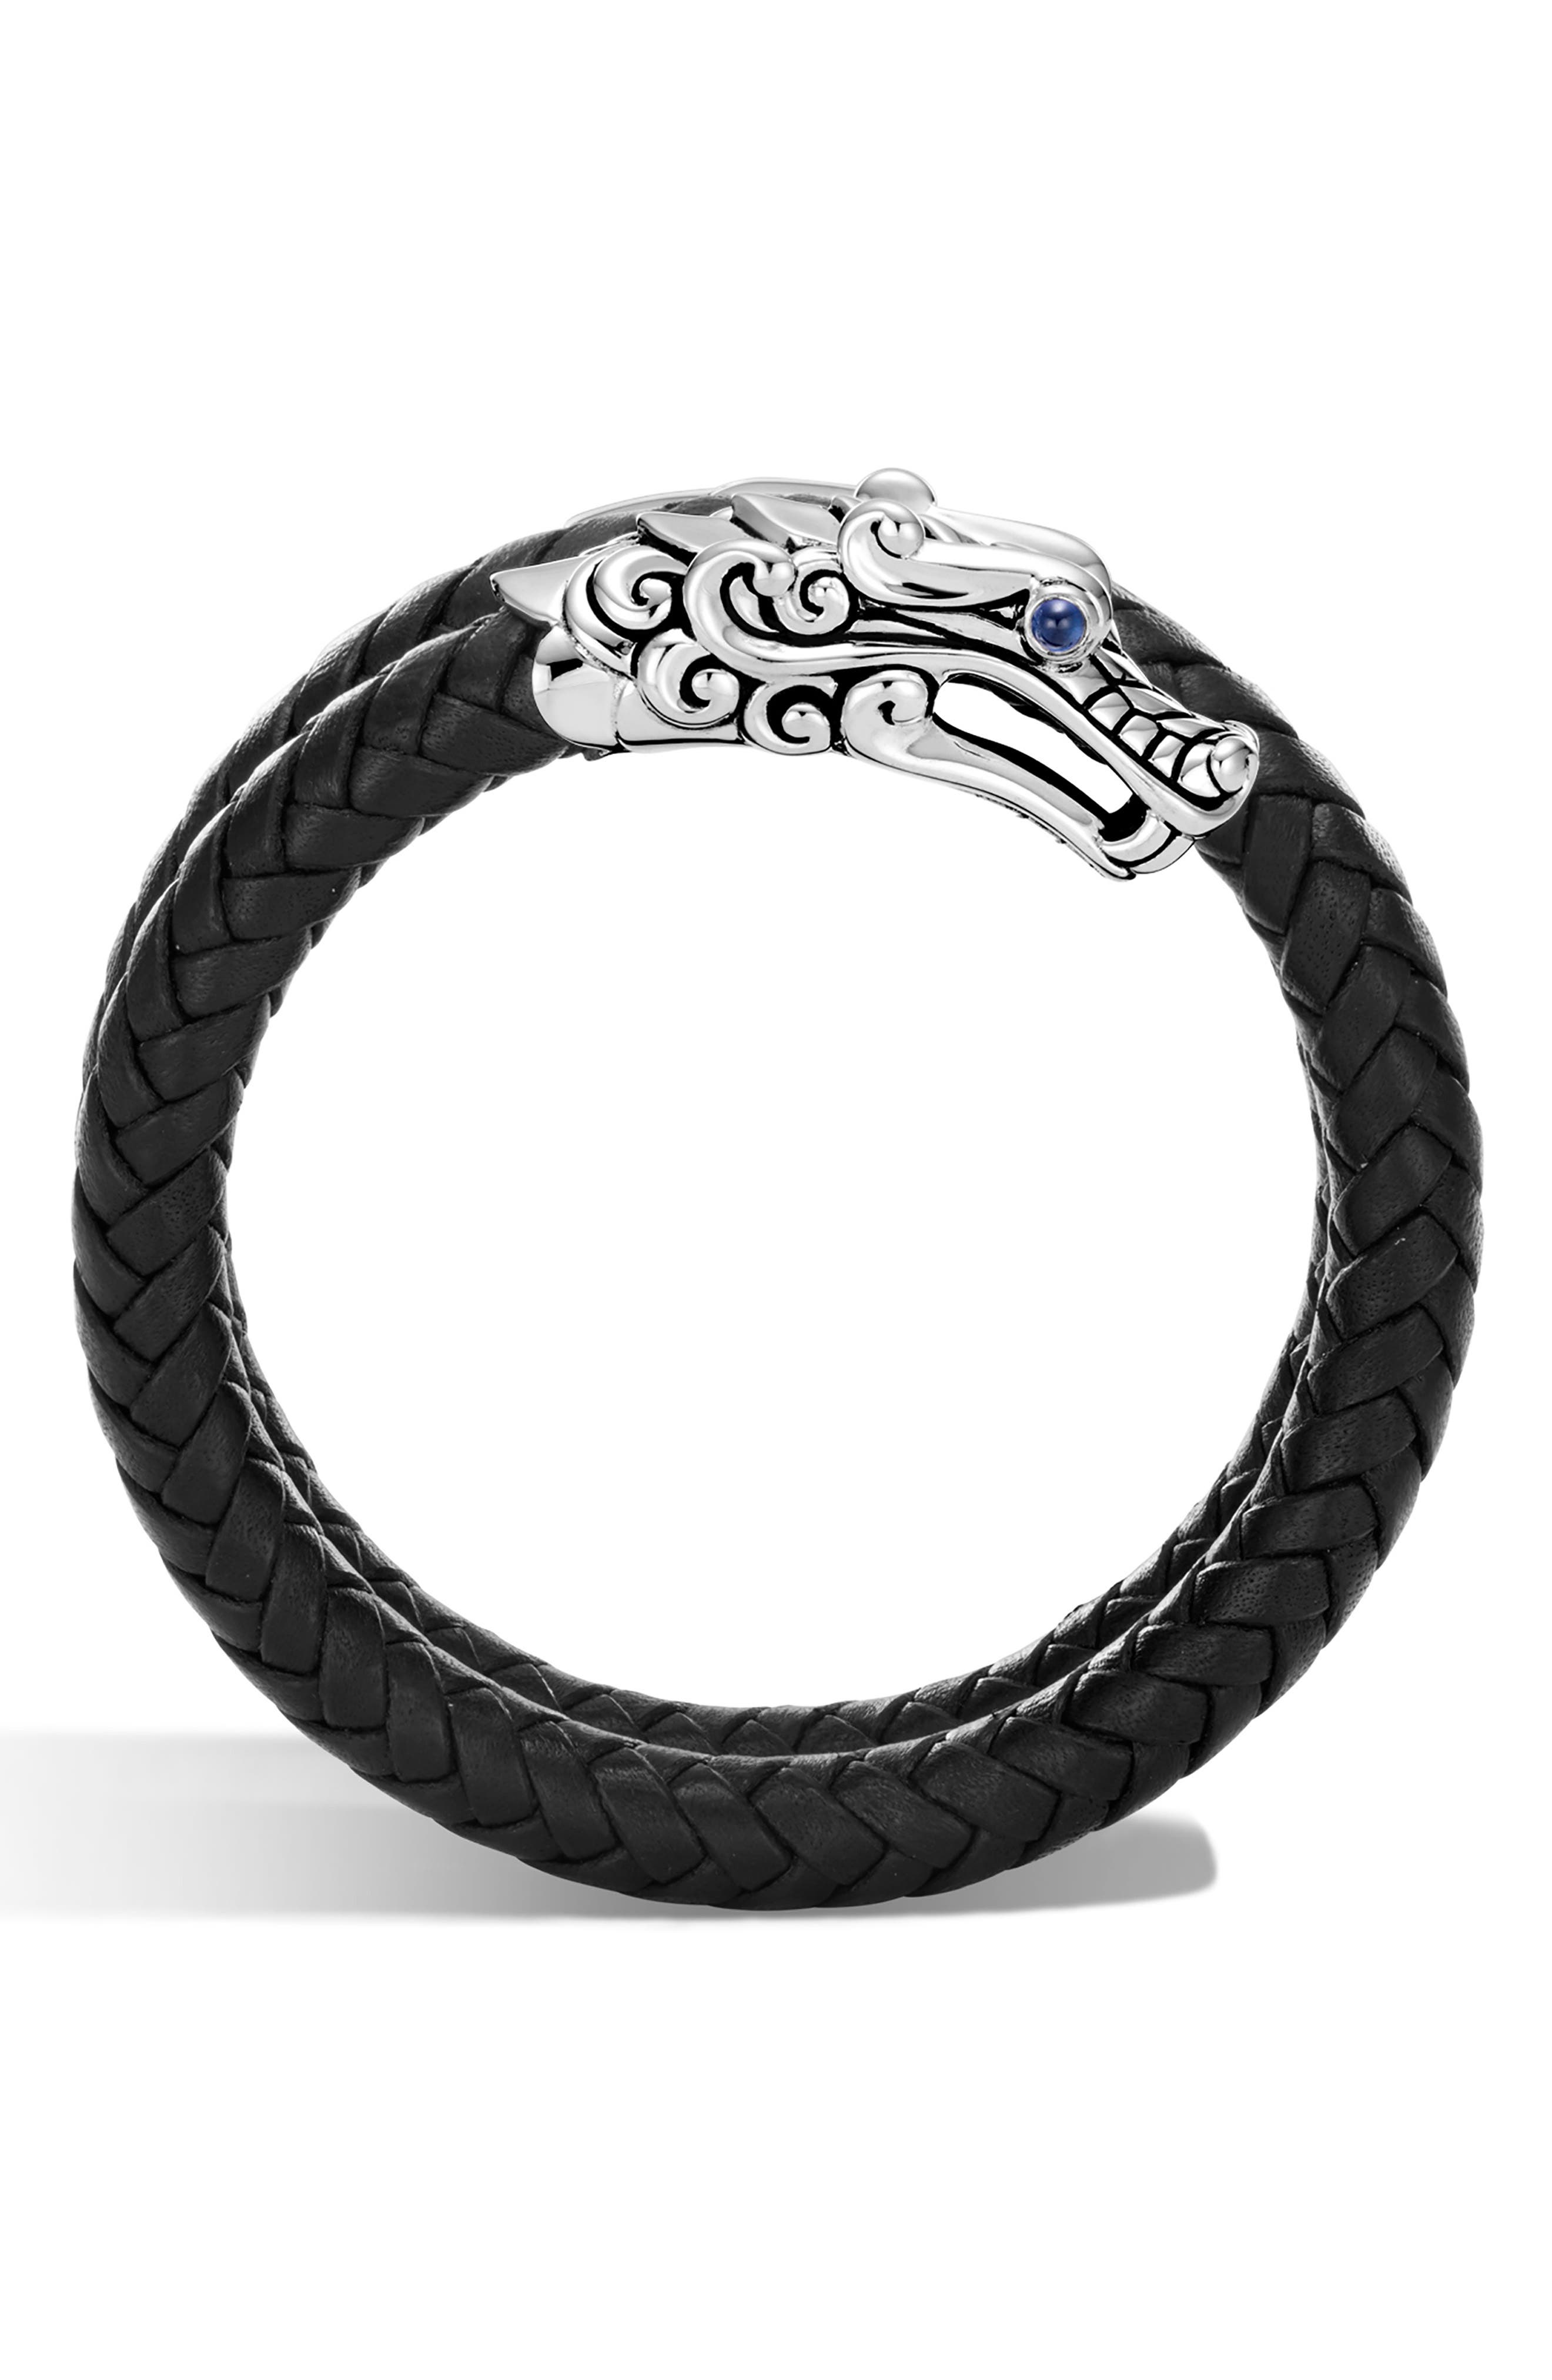 Sterling Silver Legends Naga Double Coil Bracelet With Braided Black Leather & Sapphire Eyes